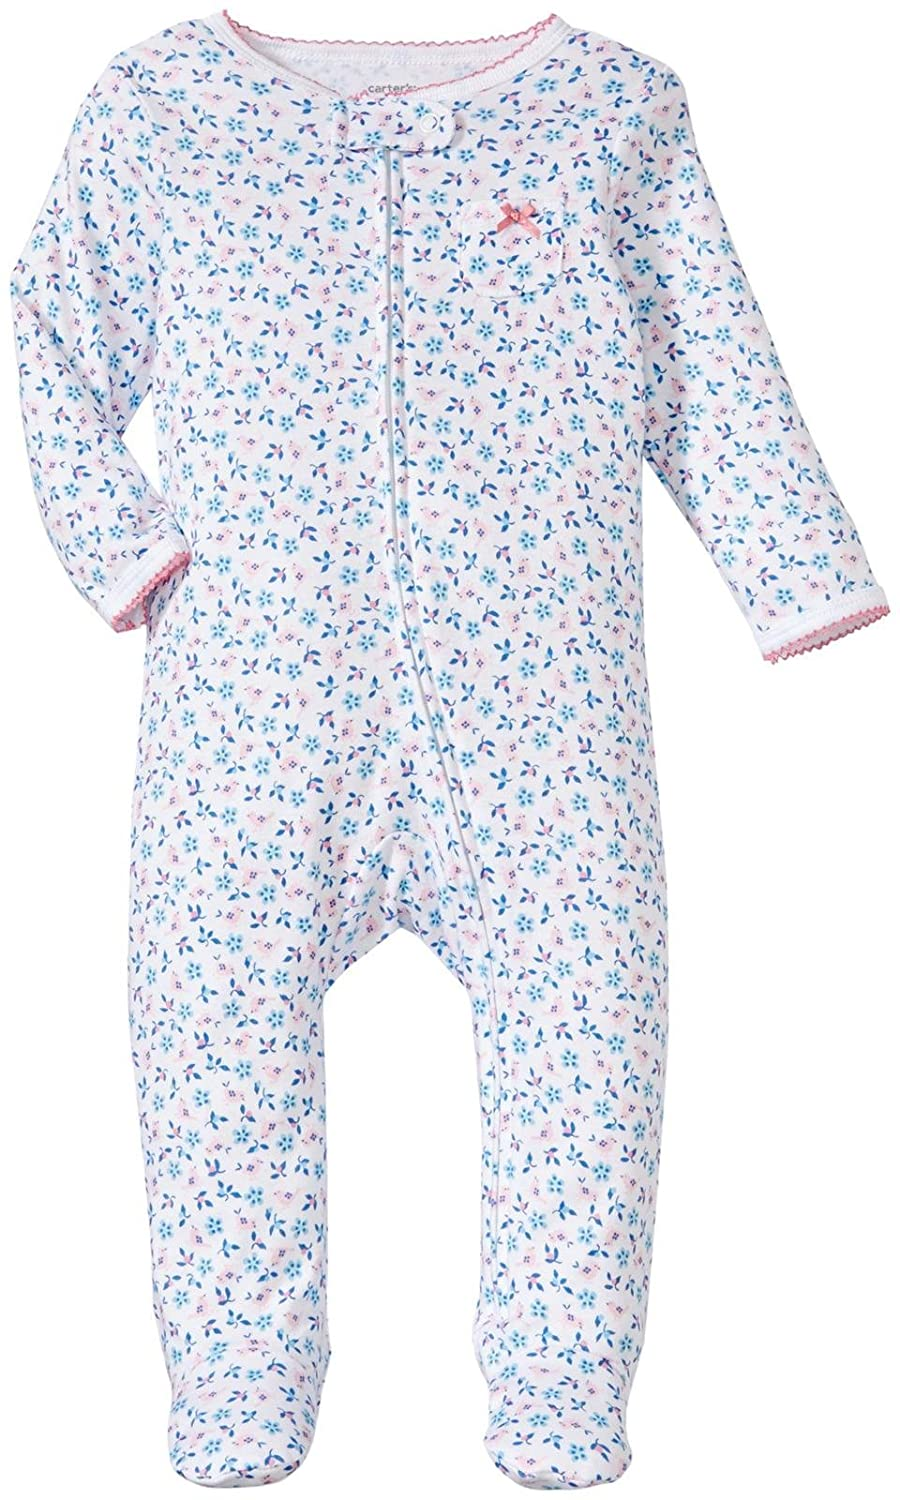 Carter's Baby Girls' Sparrow Flower Footed Coverall 3 months Carter' s 115G064-100-3M